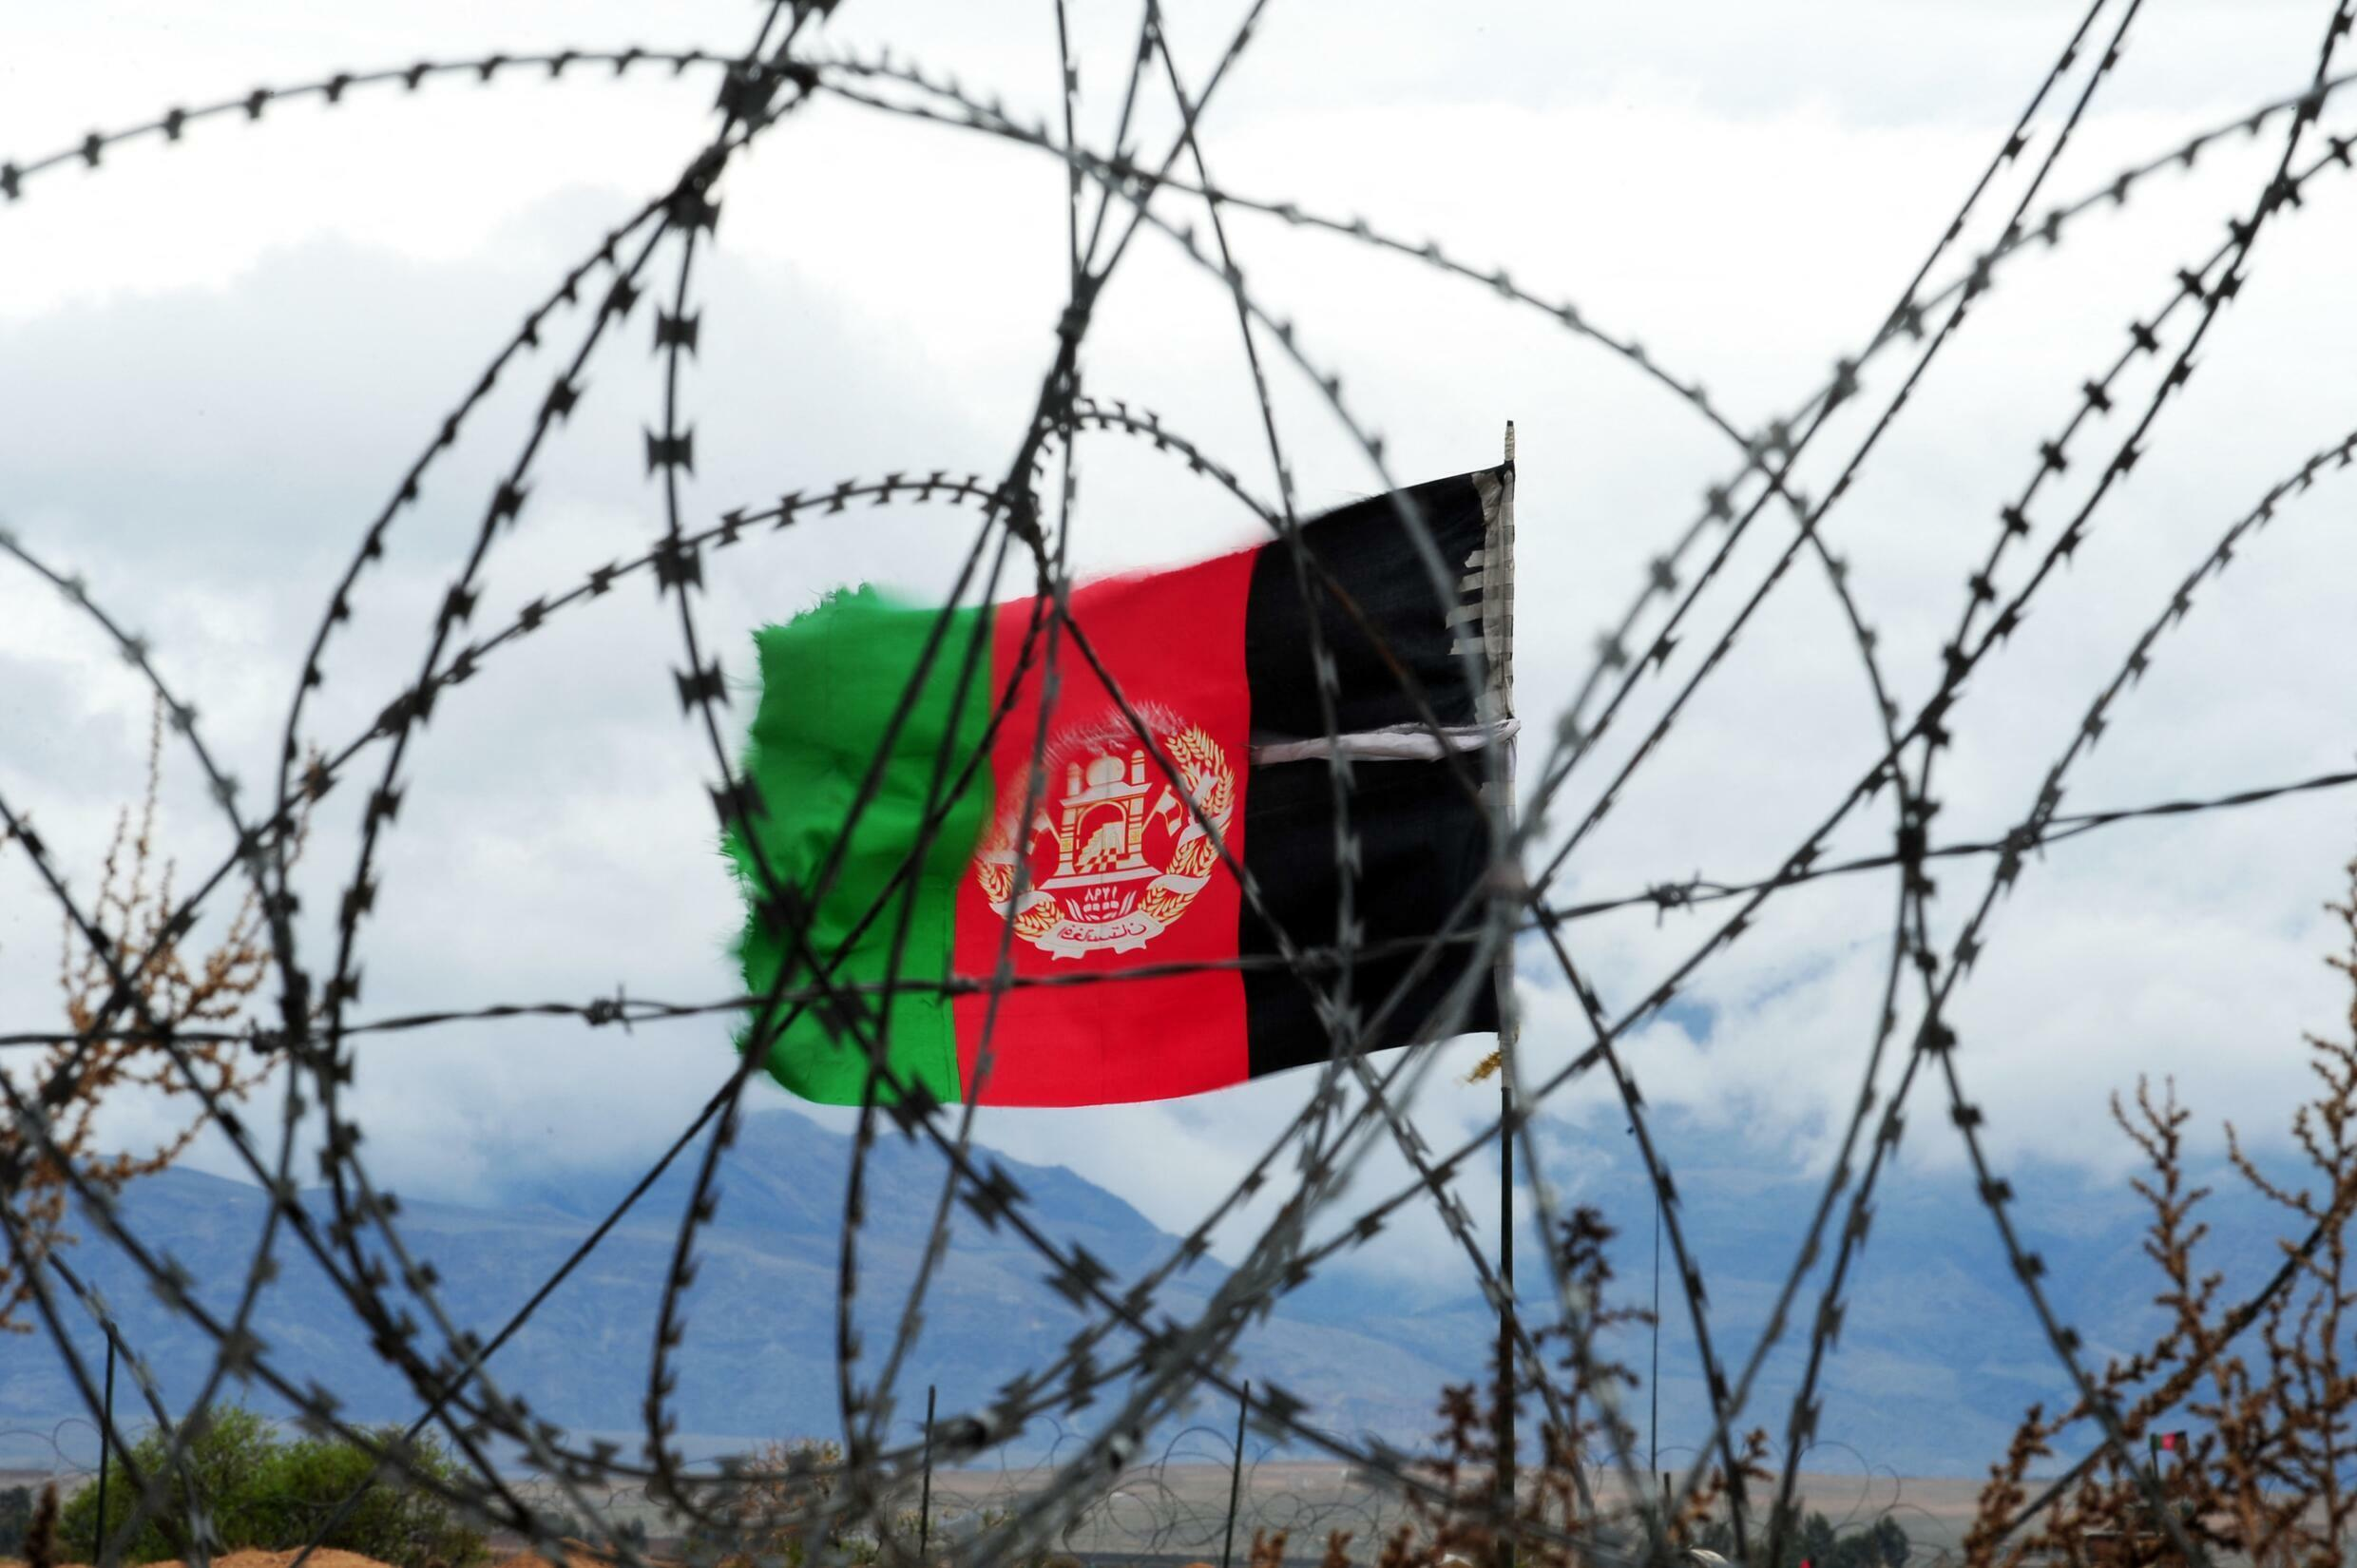 Afghanistan's flag near barbed wire outside of Kabul (illustration) overrun by the Taliban on 15 August 2021.